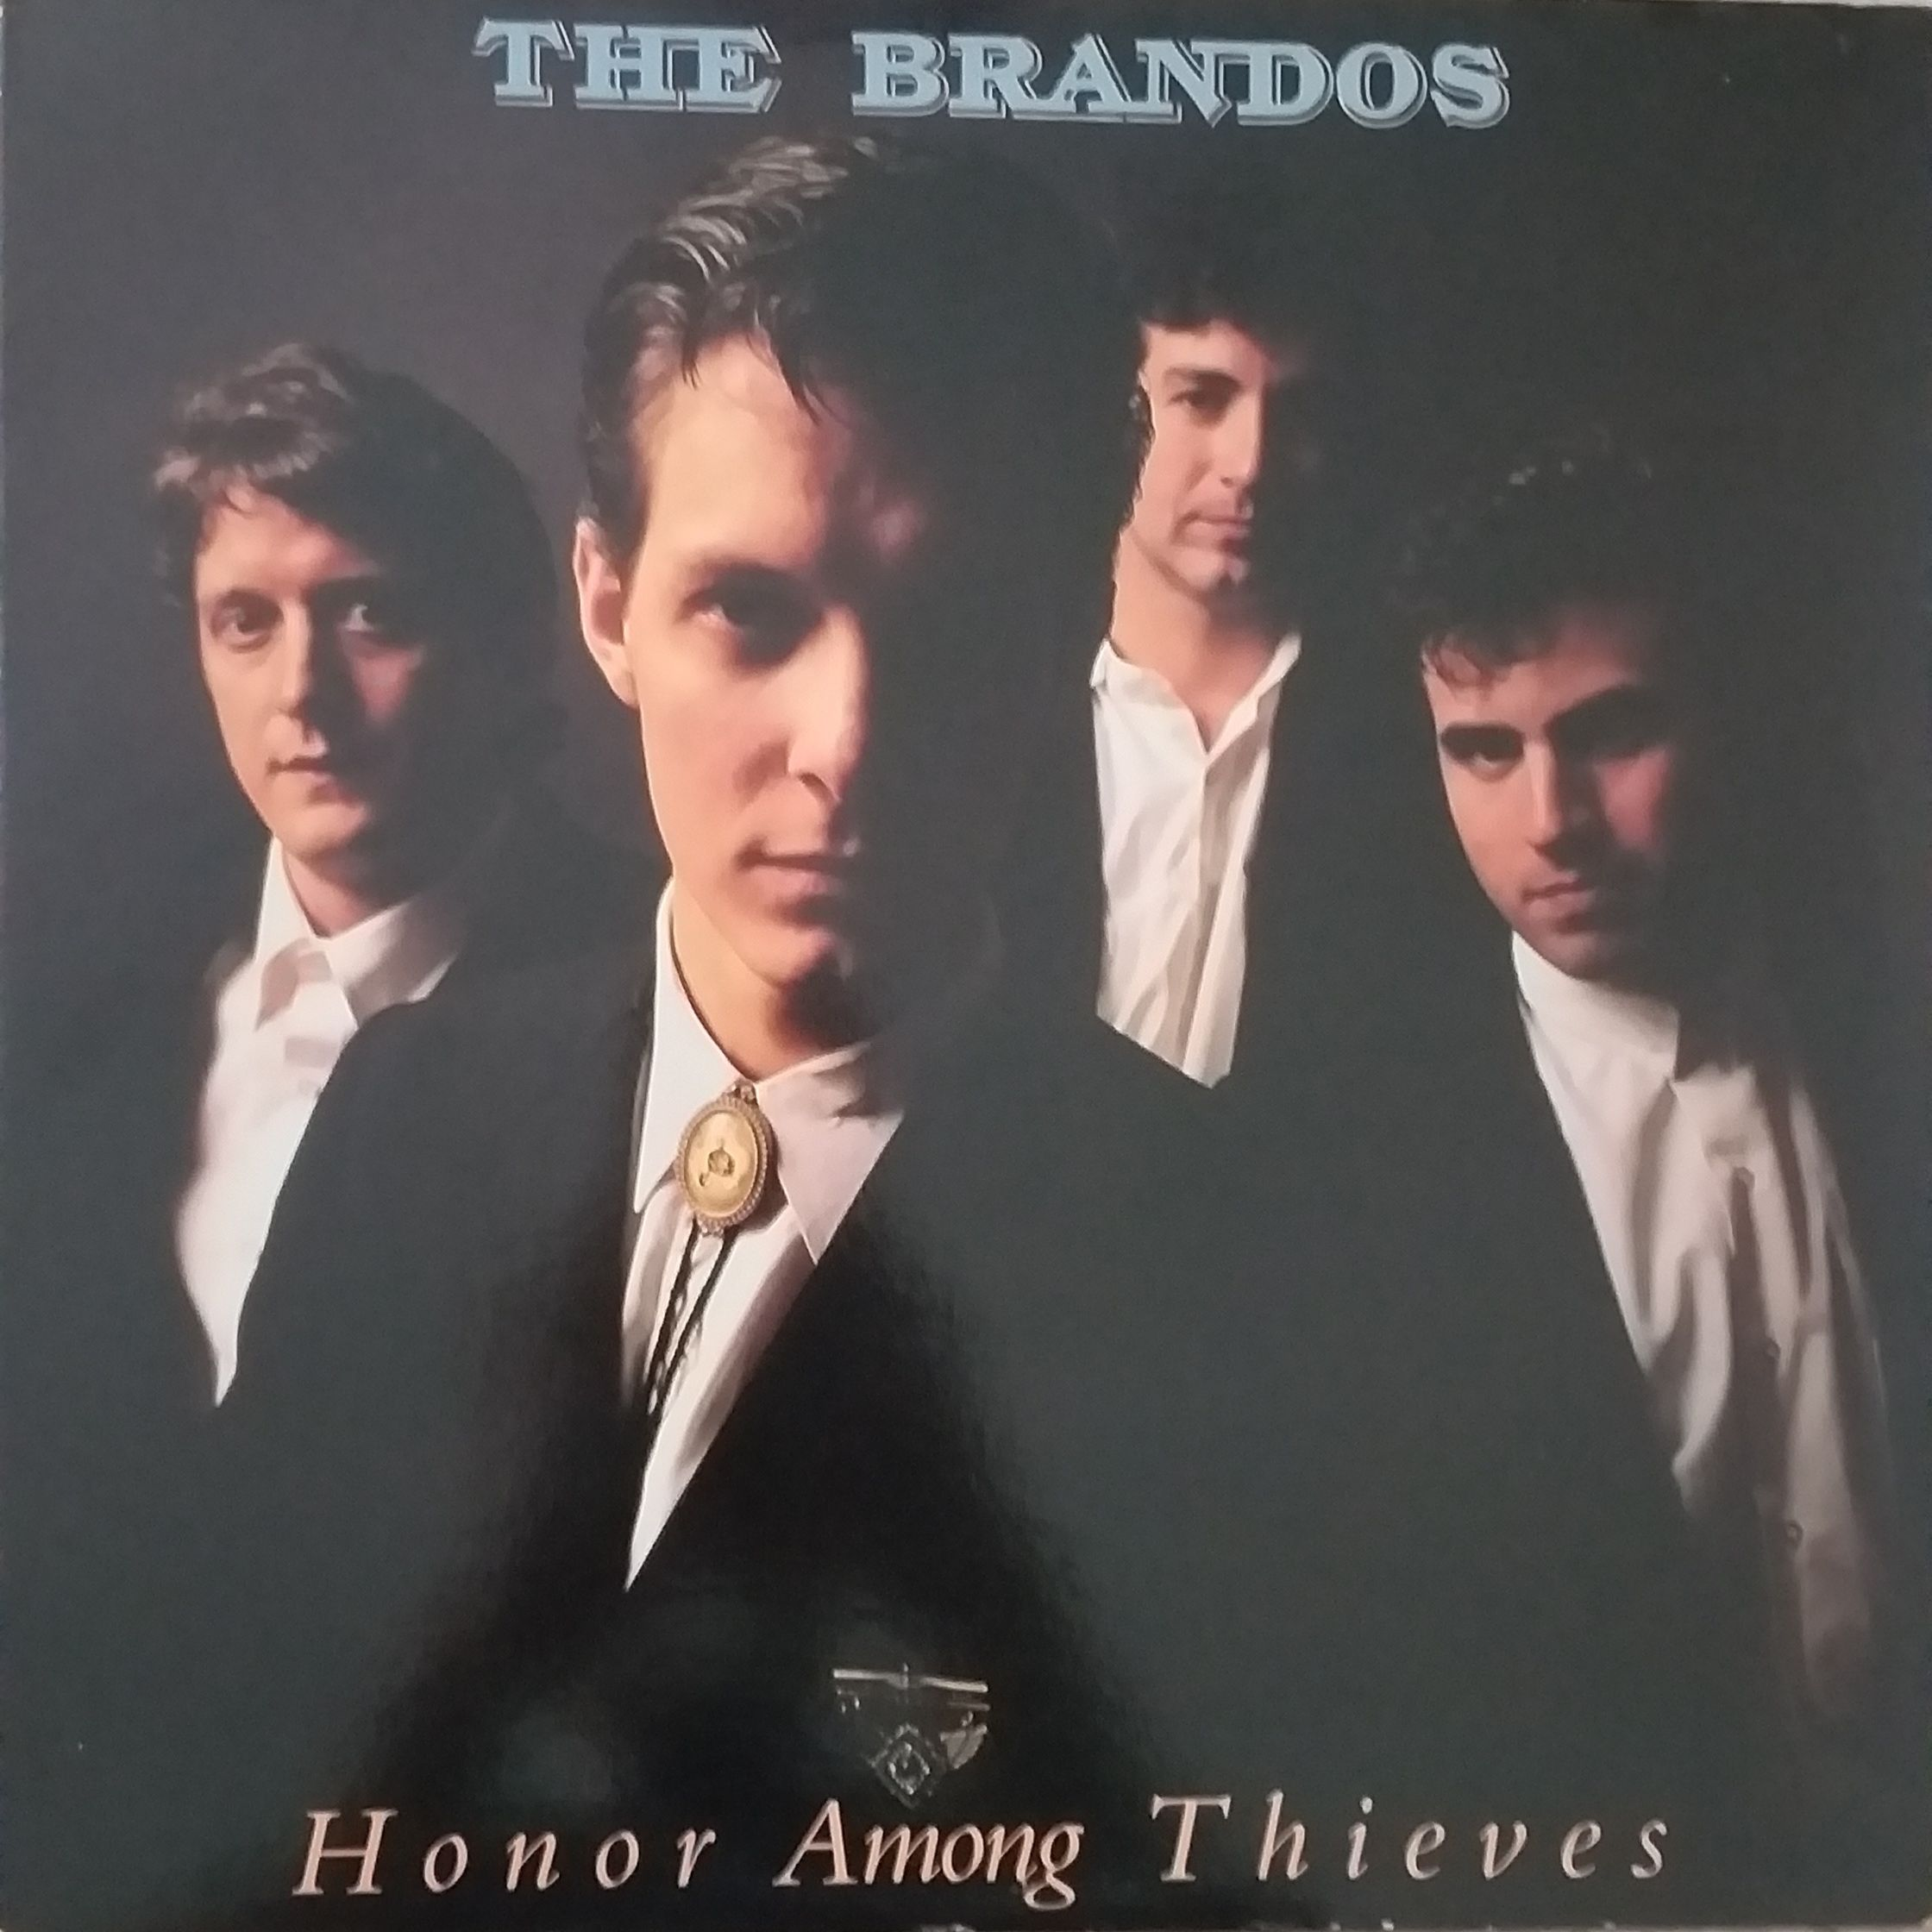 The Brandos Honor among thieves LP undefined